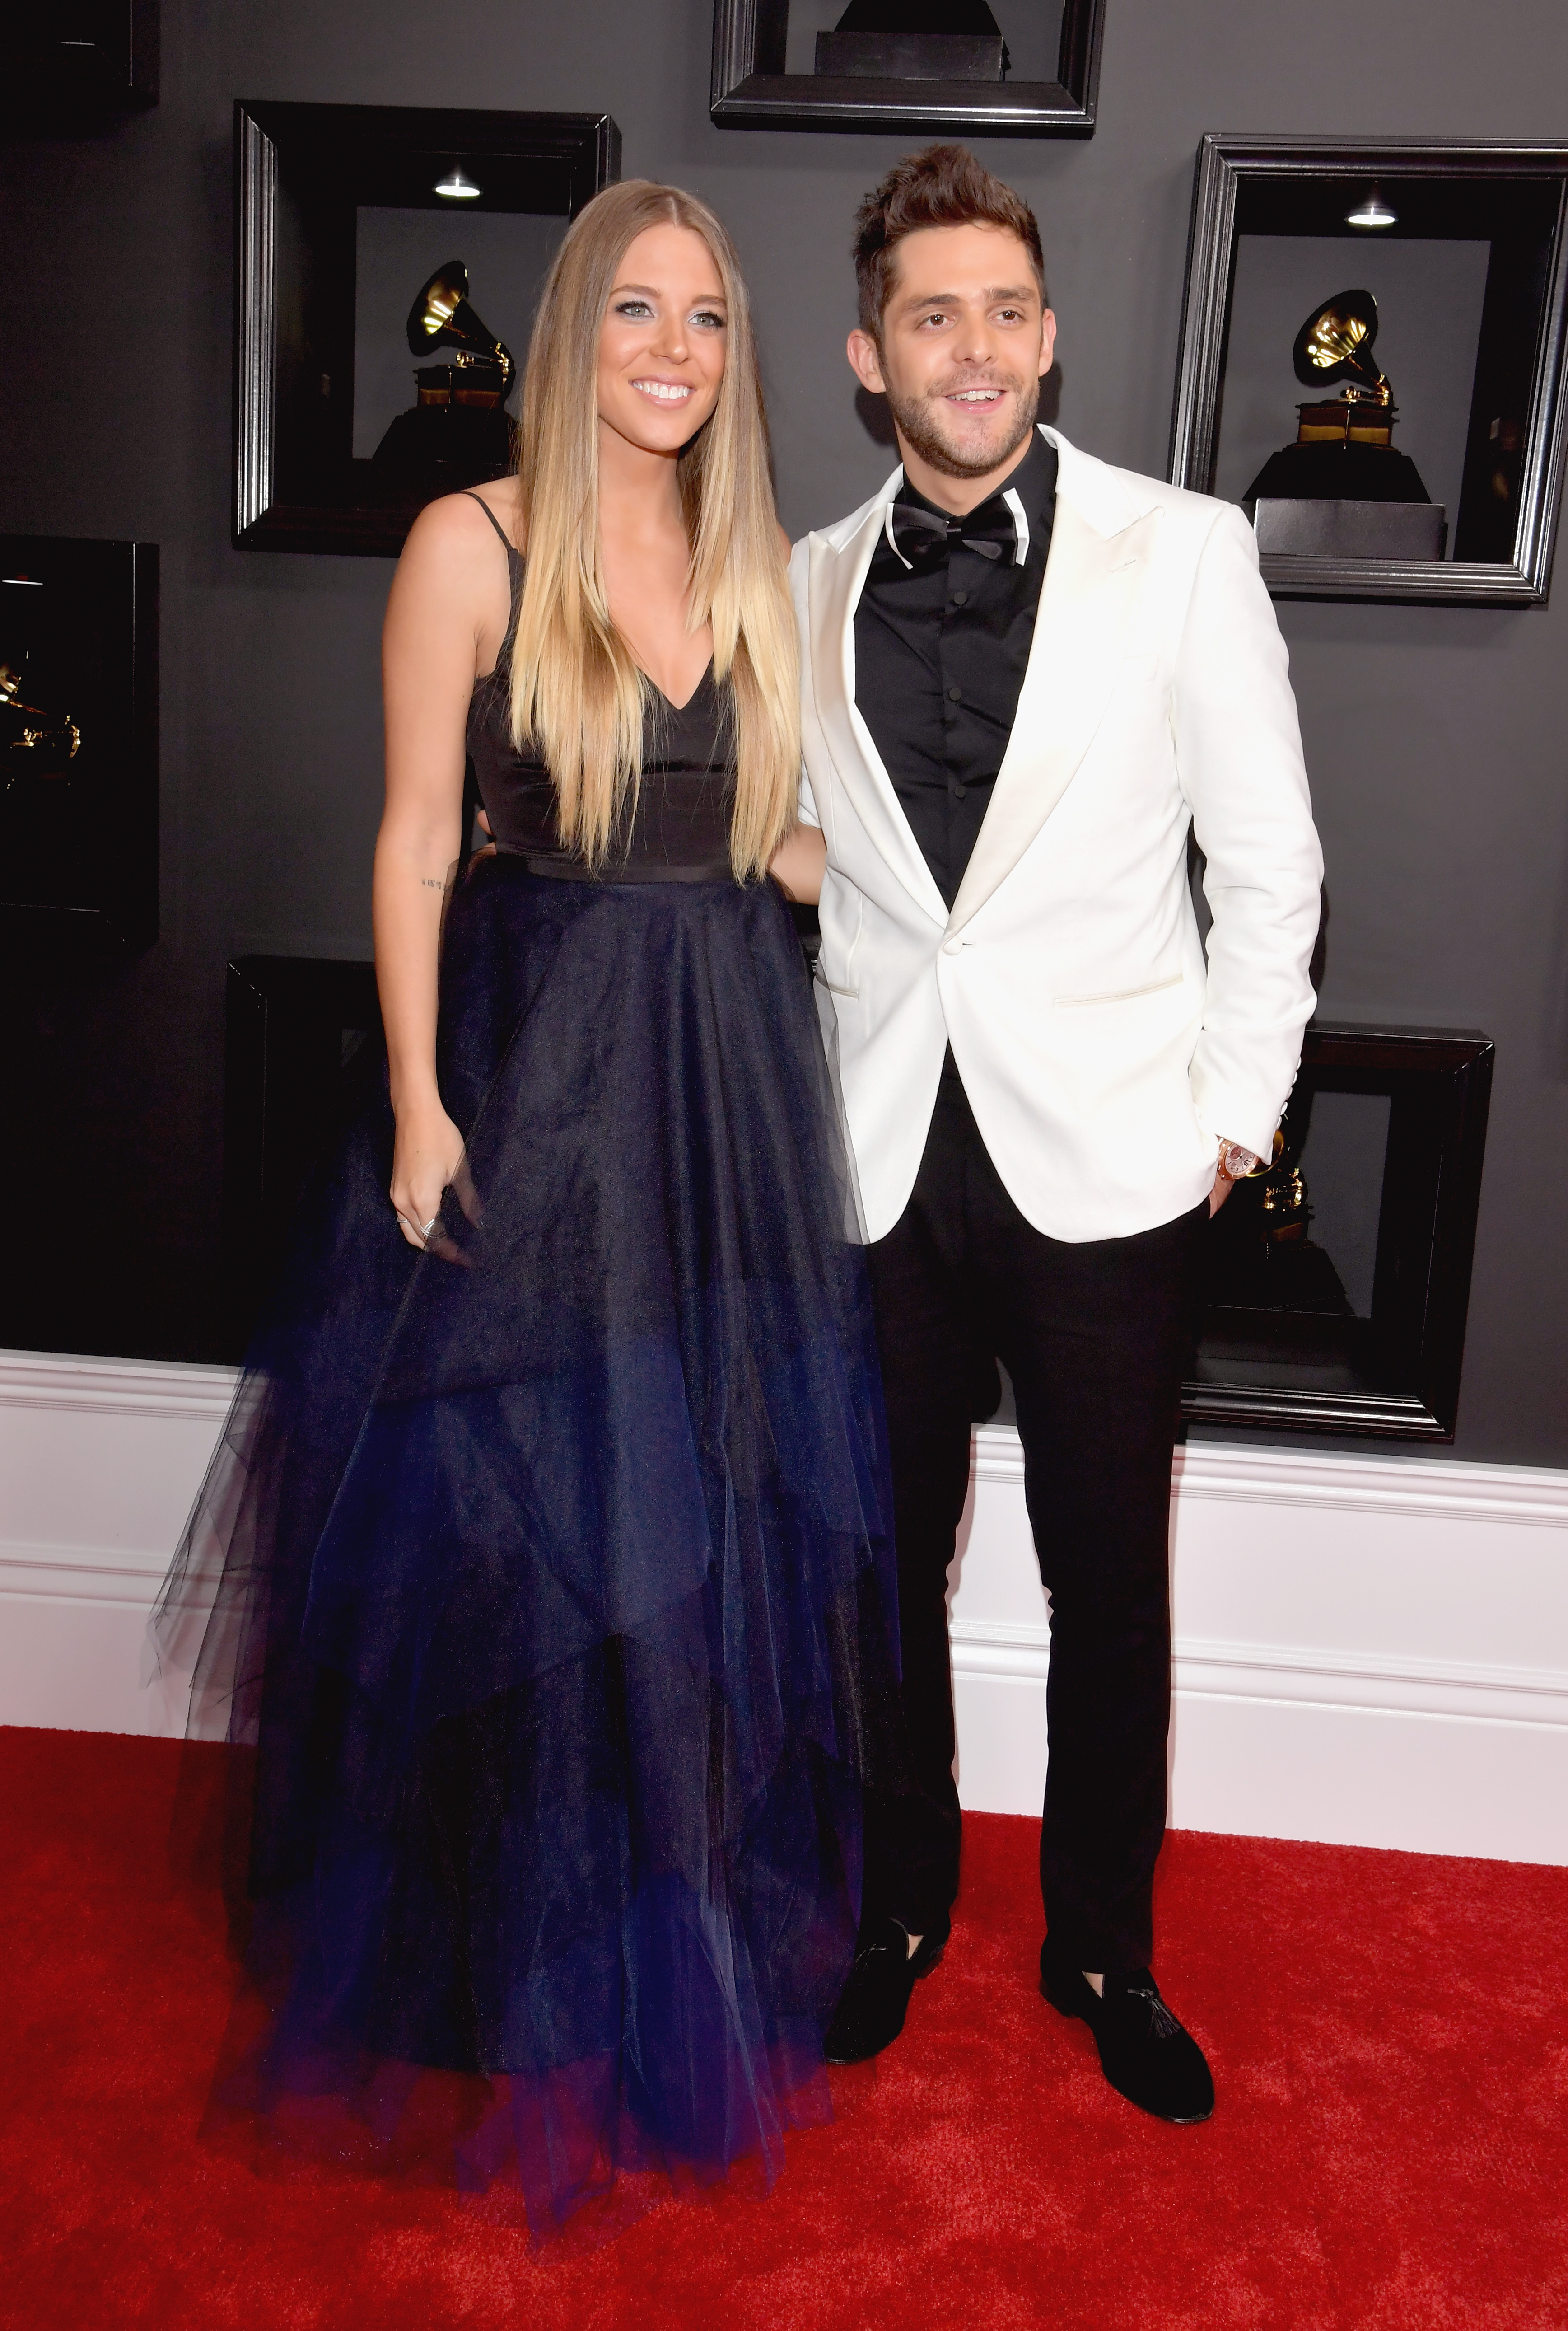 Thomas Rhett and wife Lauren attend The 59th GRAMMY Awards; Photo by Lester Cohen/WireImage